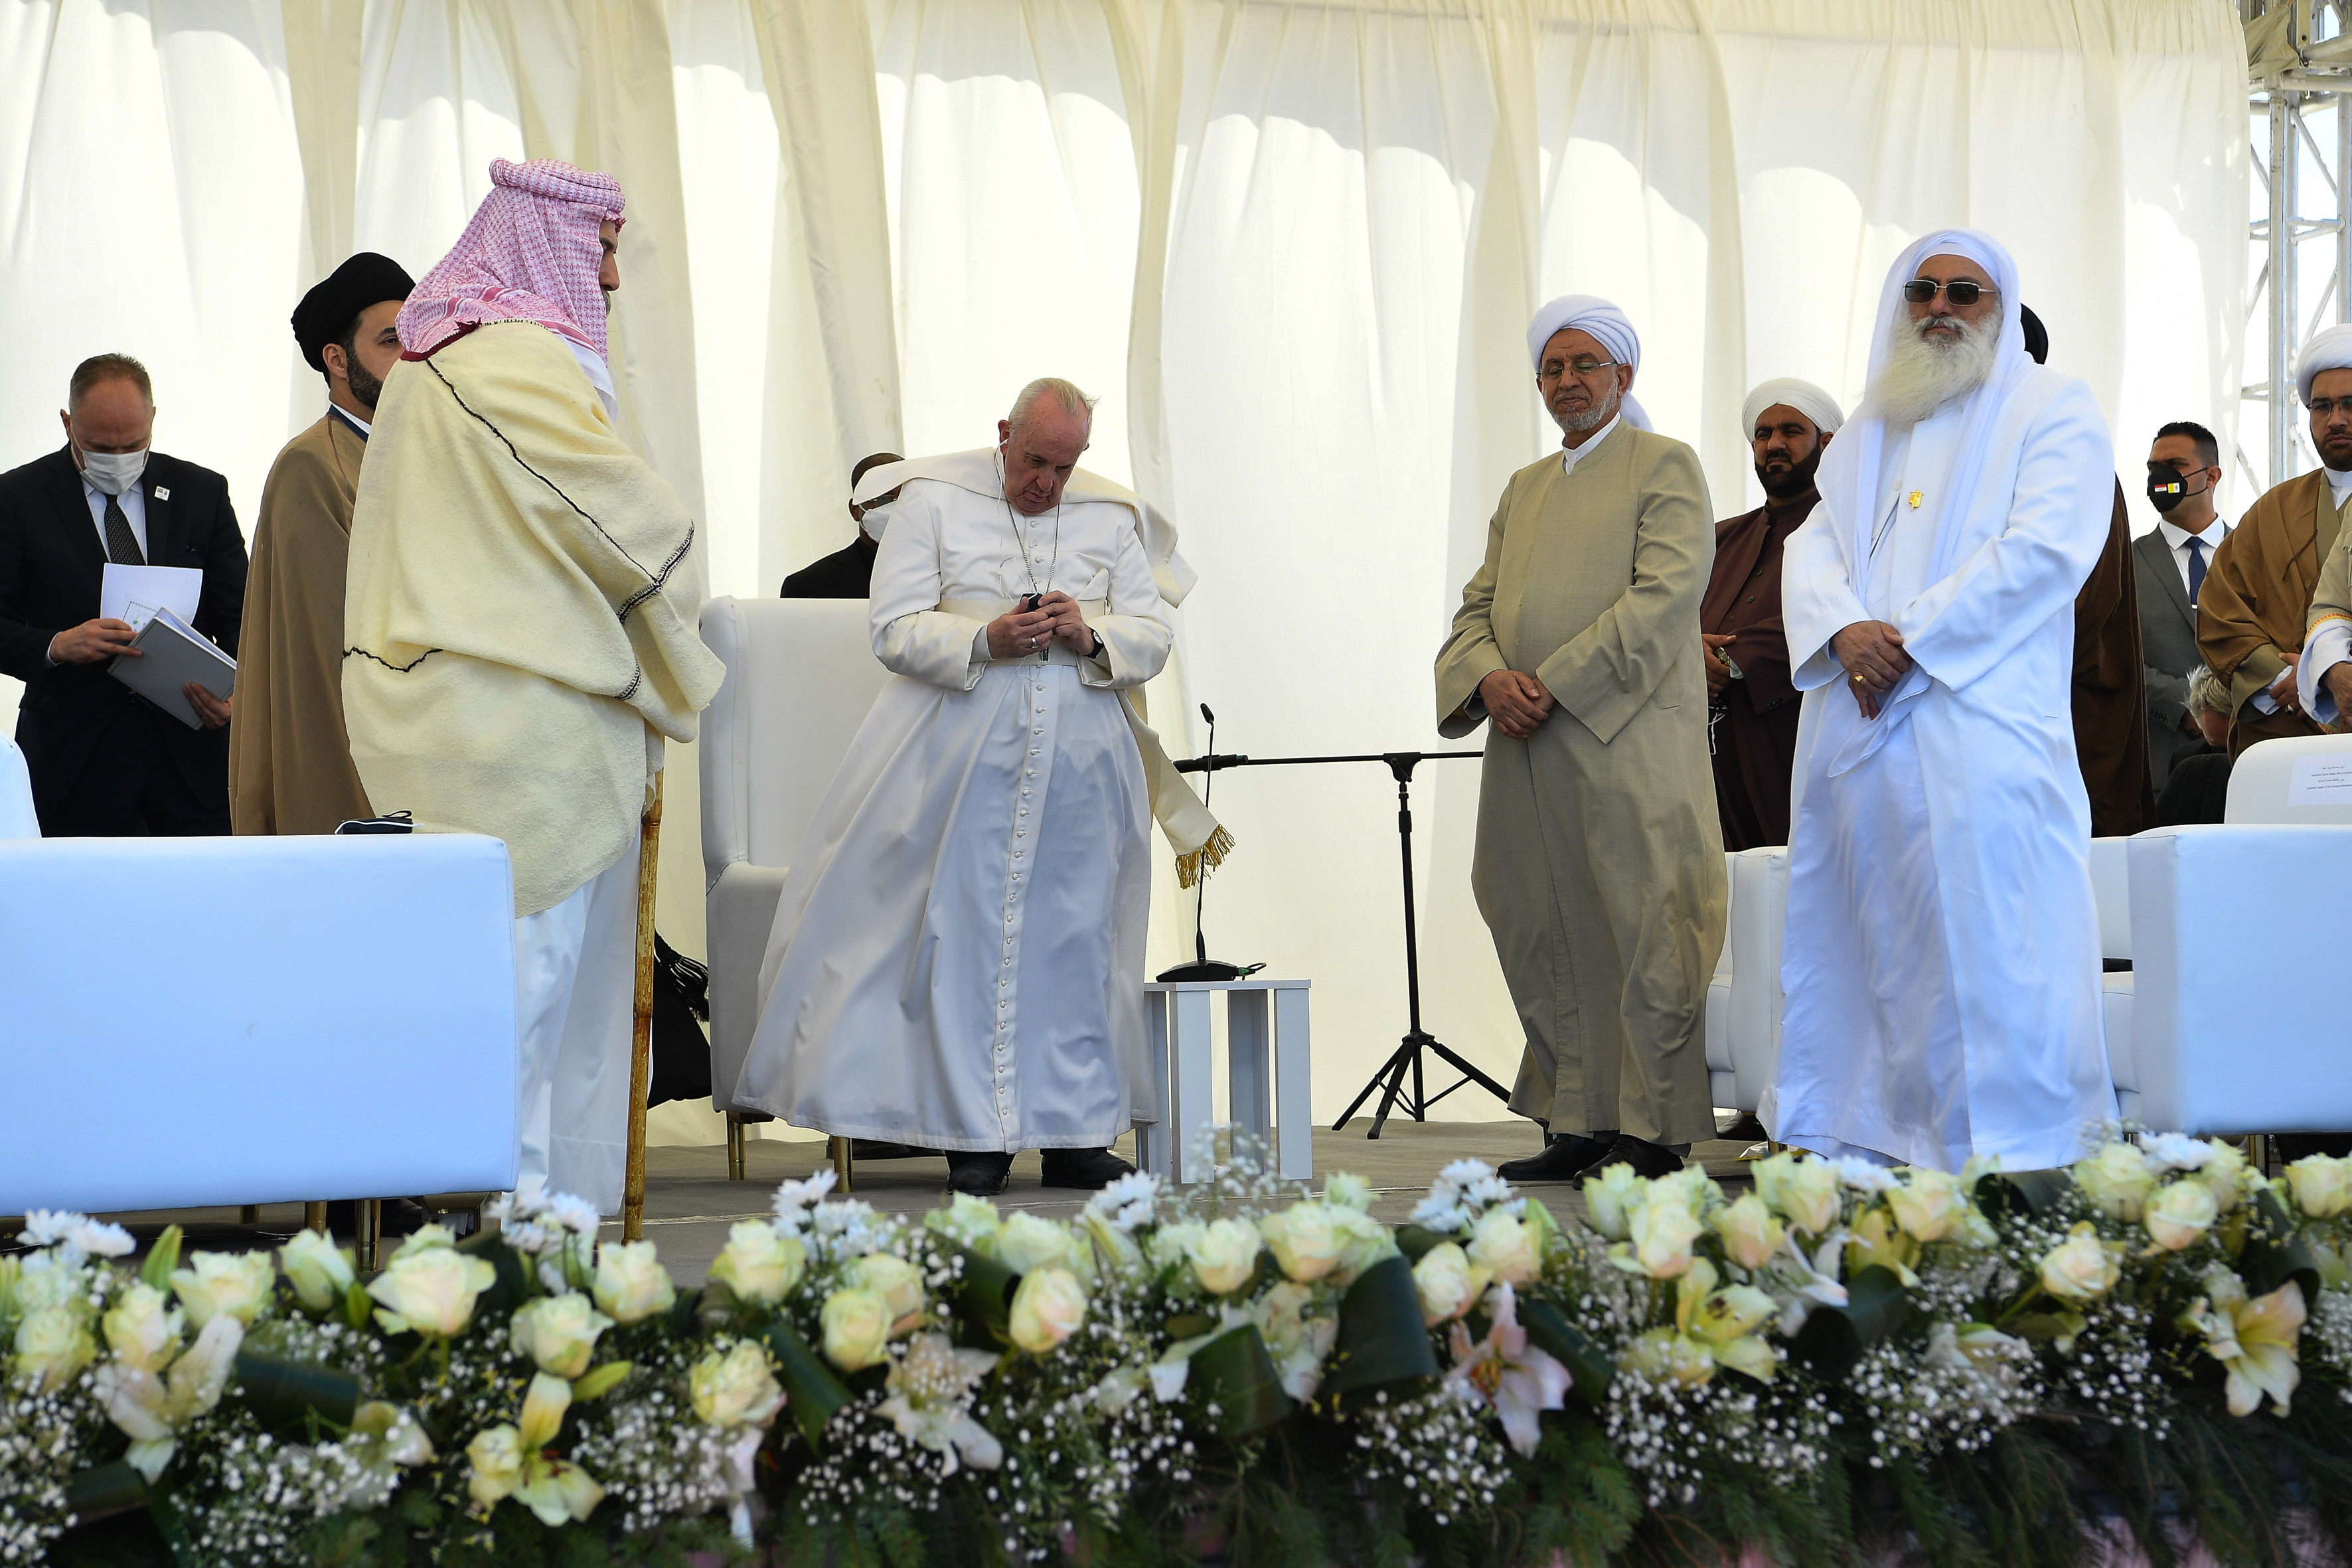 Pope Francis participates in an interreligious meeting at the site of Ur, outside Nasiriyah, Iraq, March 6, 2021.